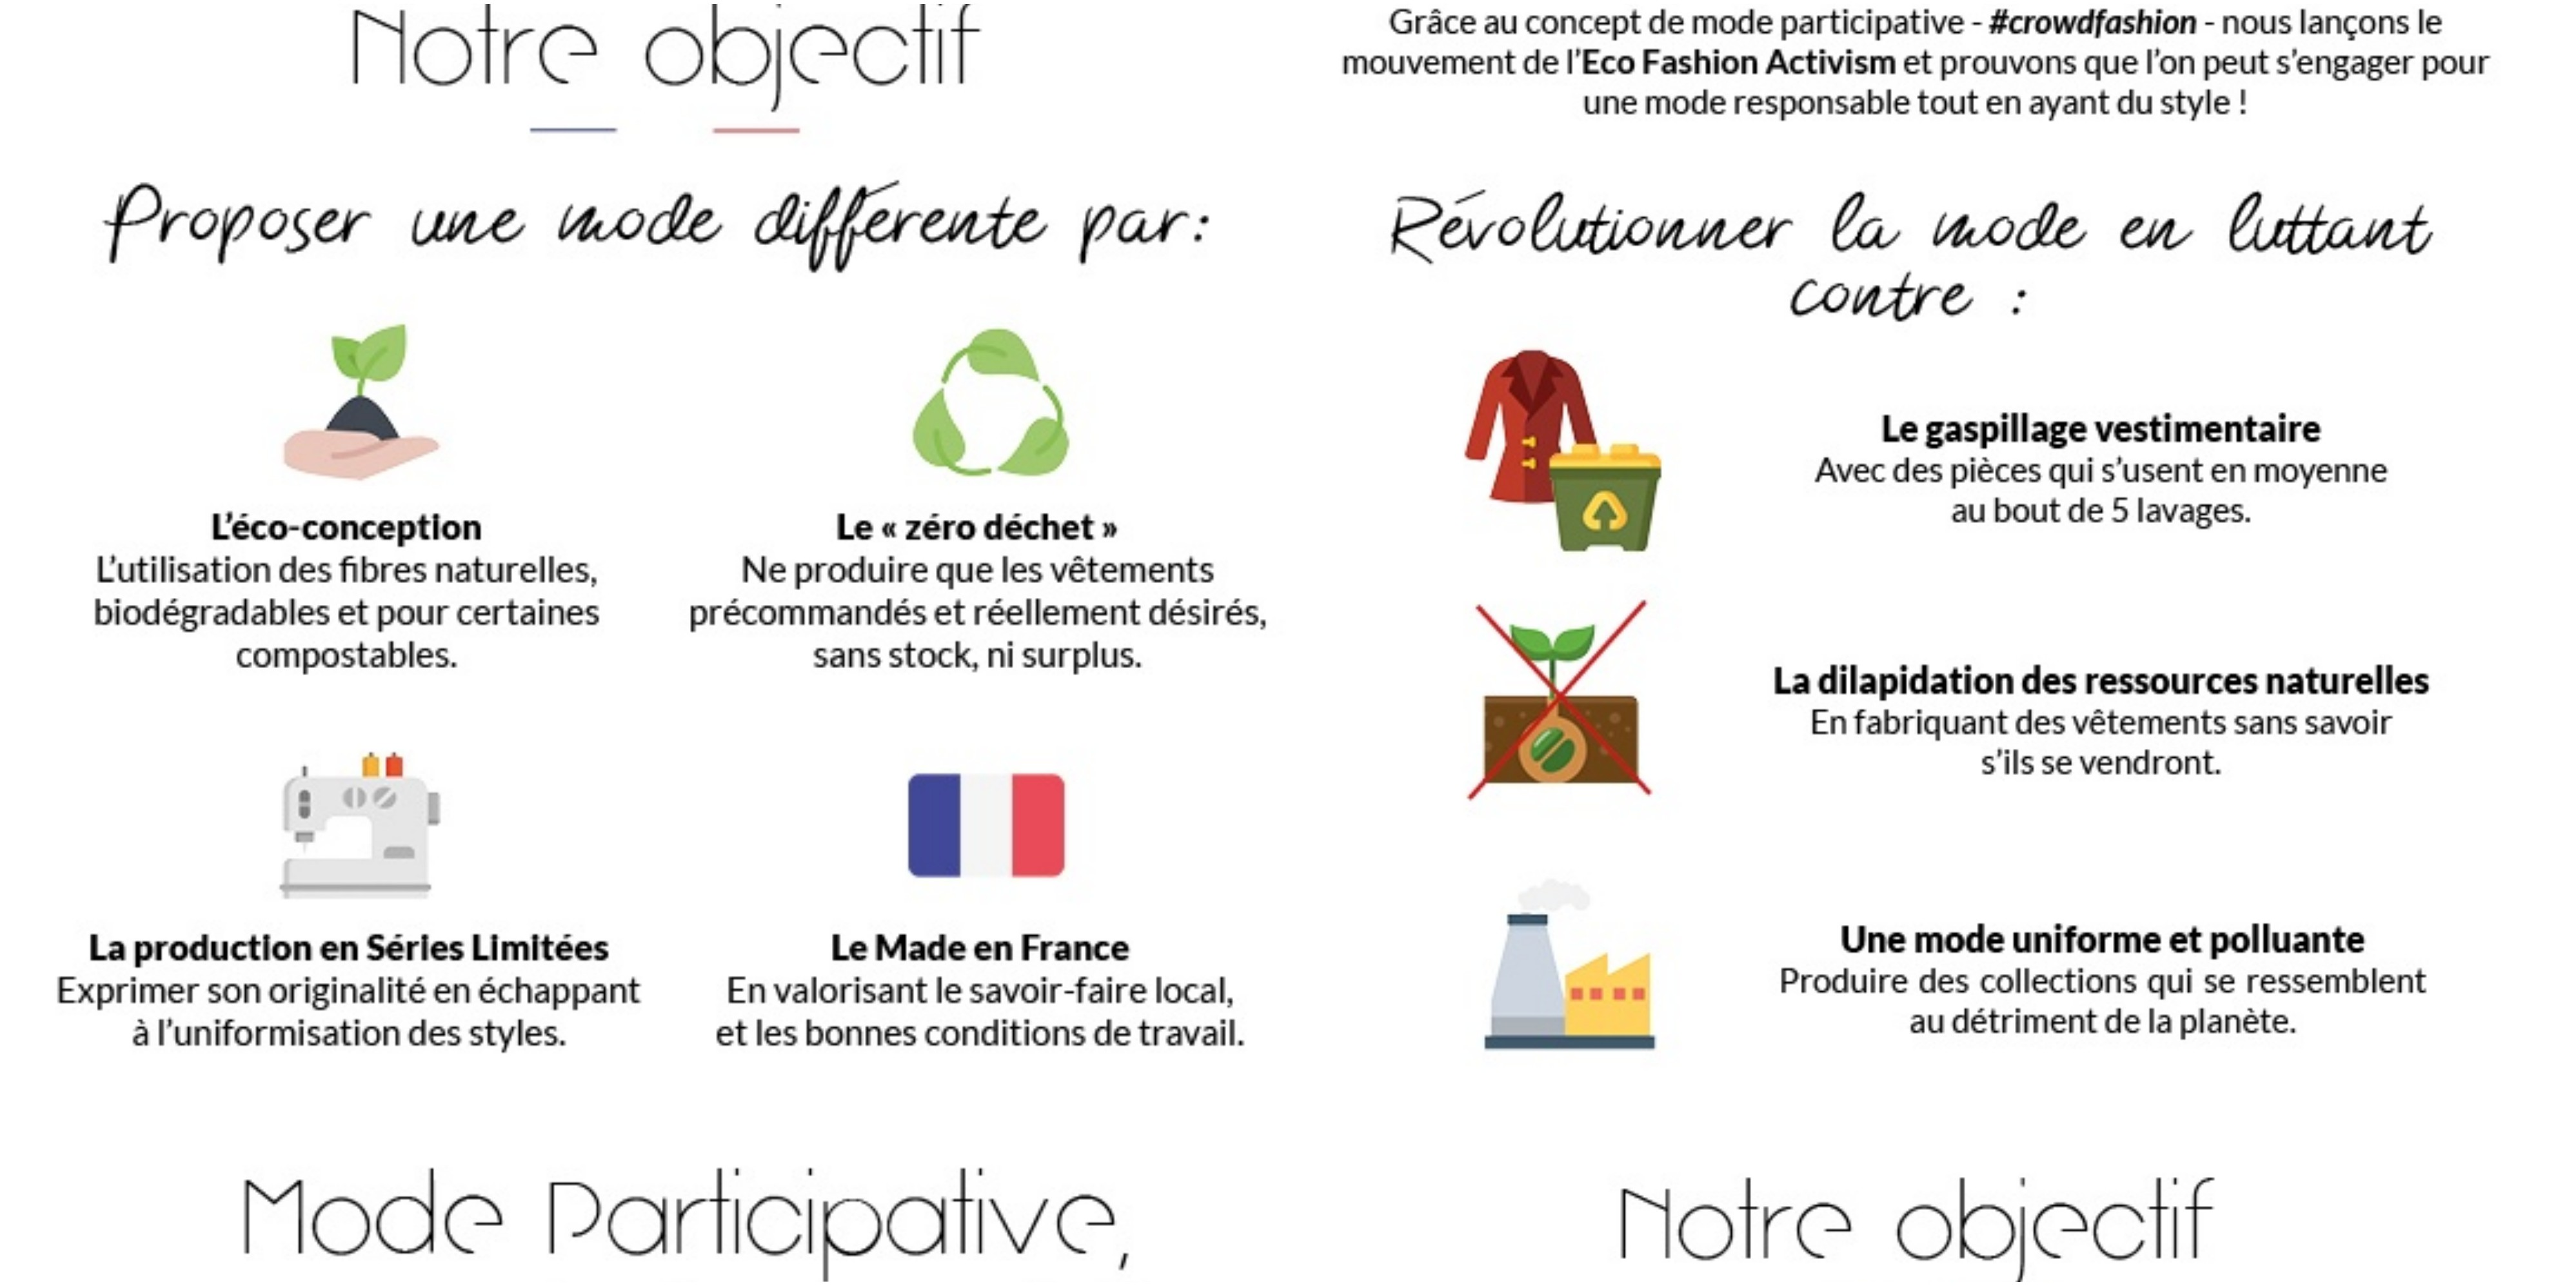 slow-fashion-eco-responsable-aatise